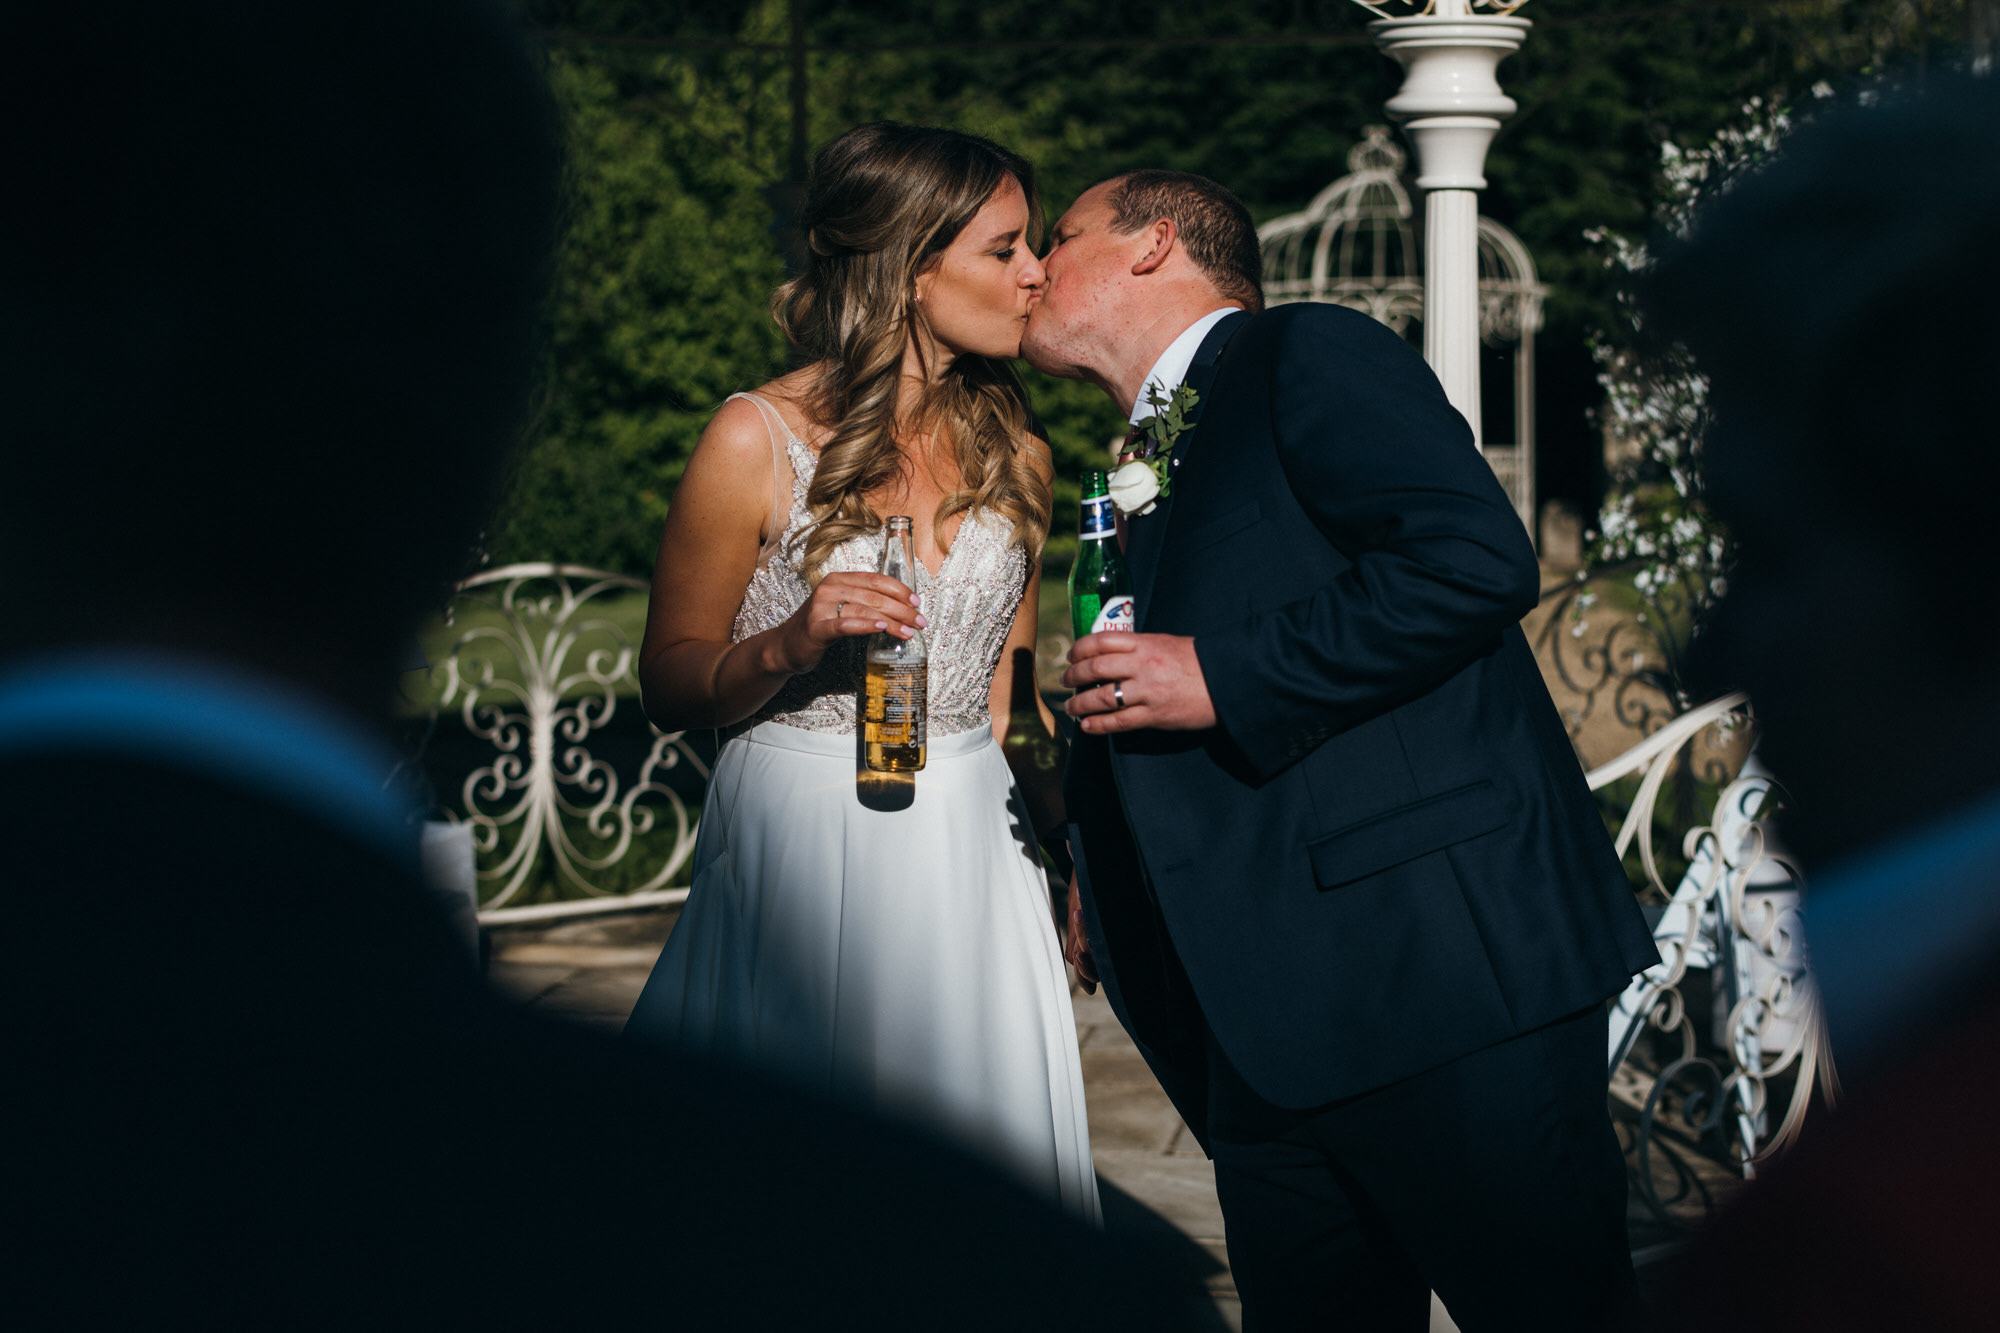 Manor by the lake wedding photographer 64